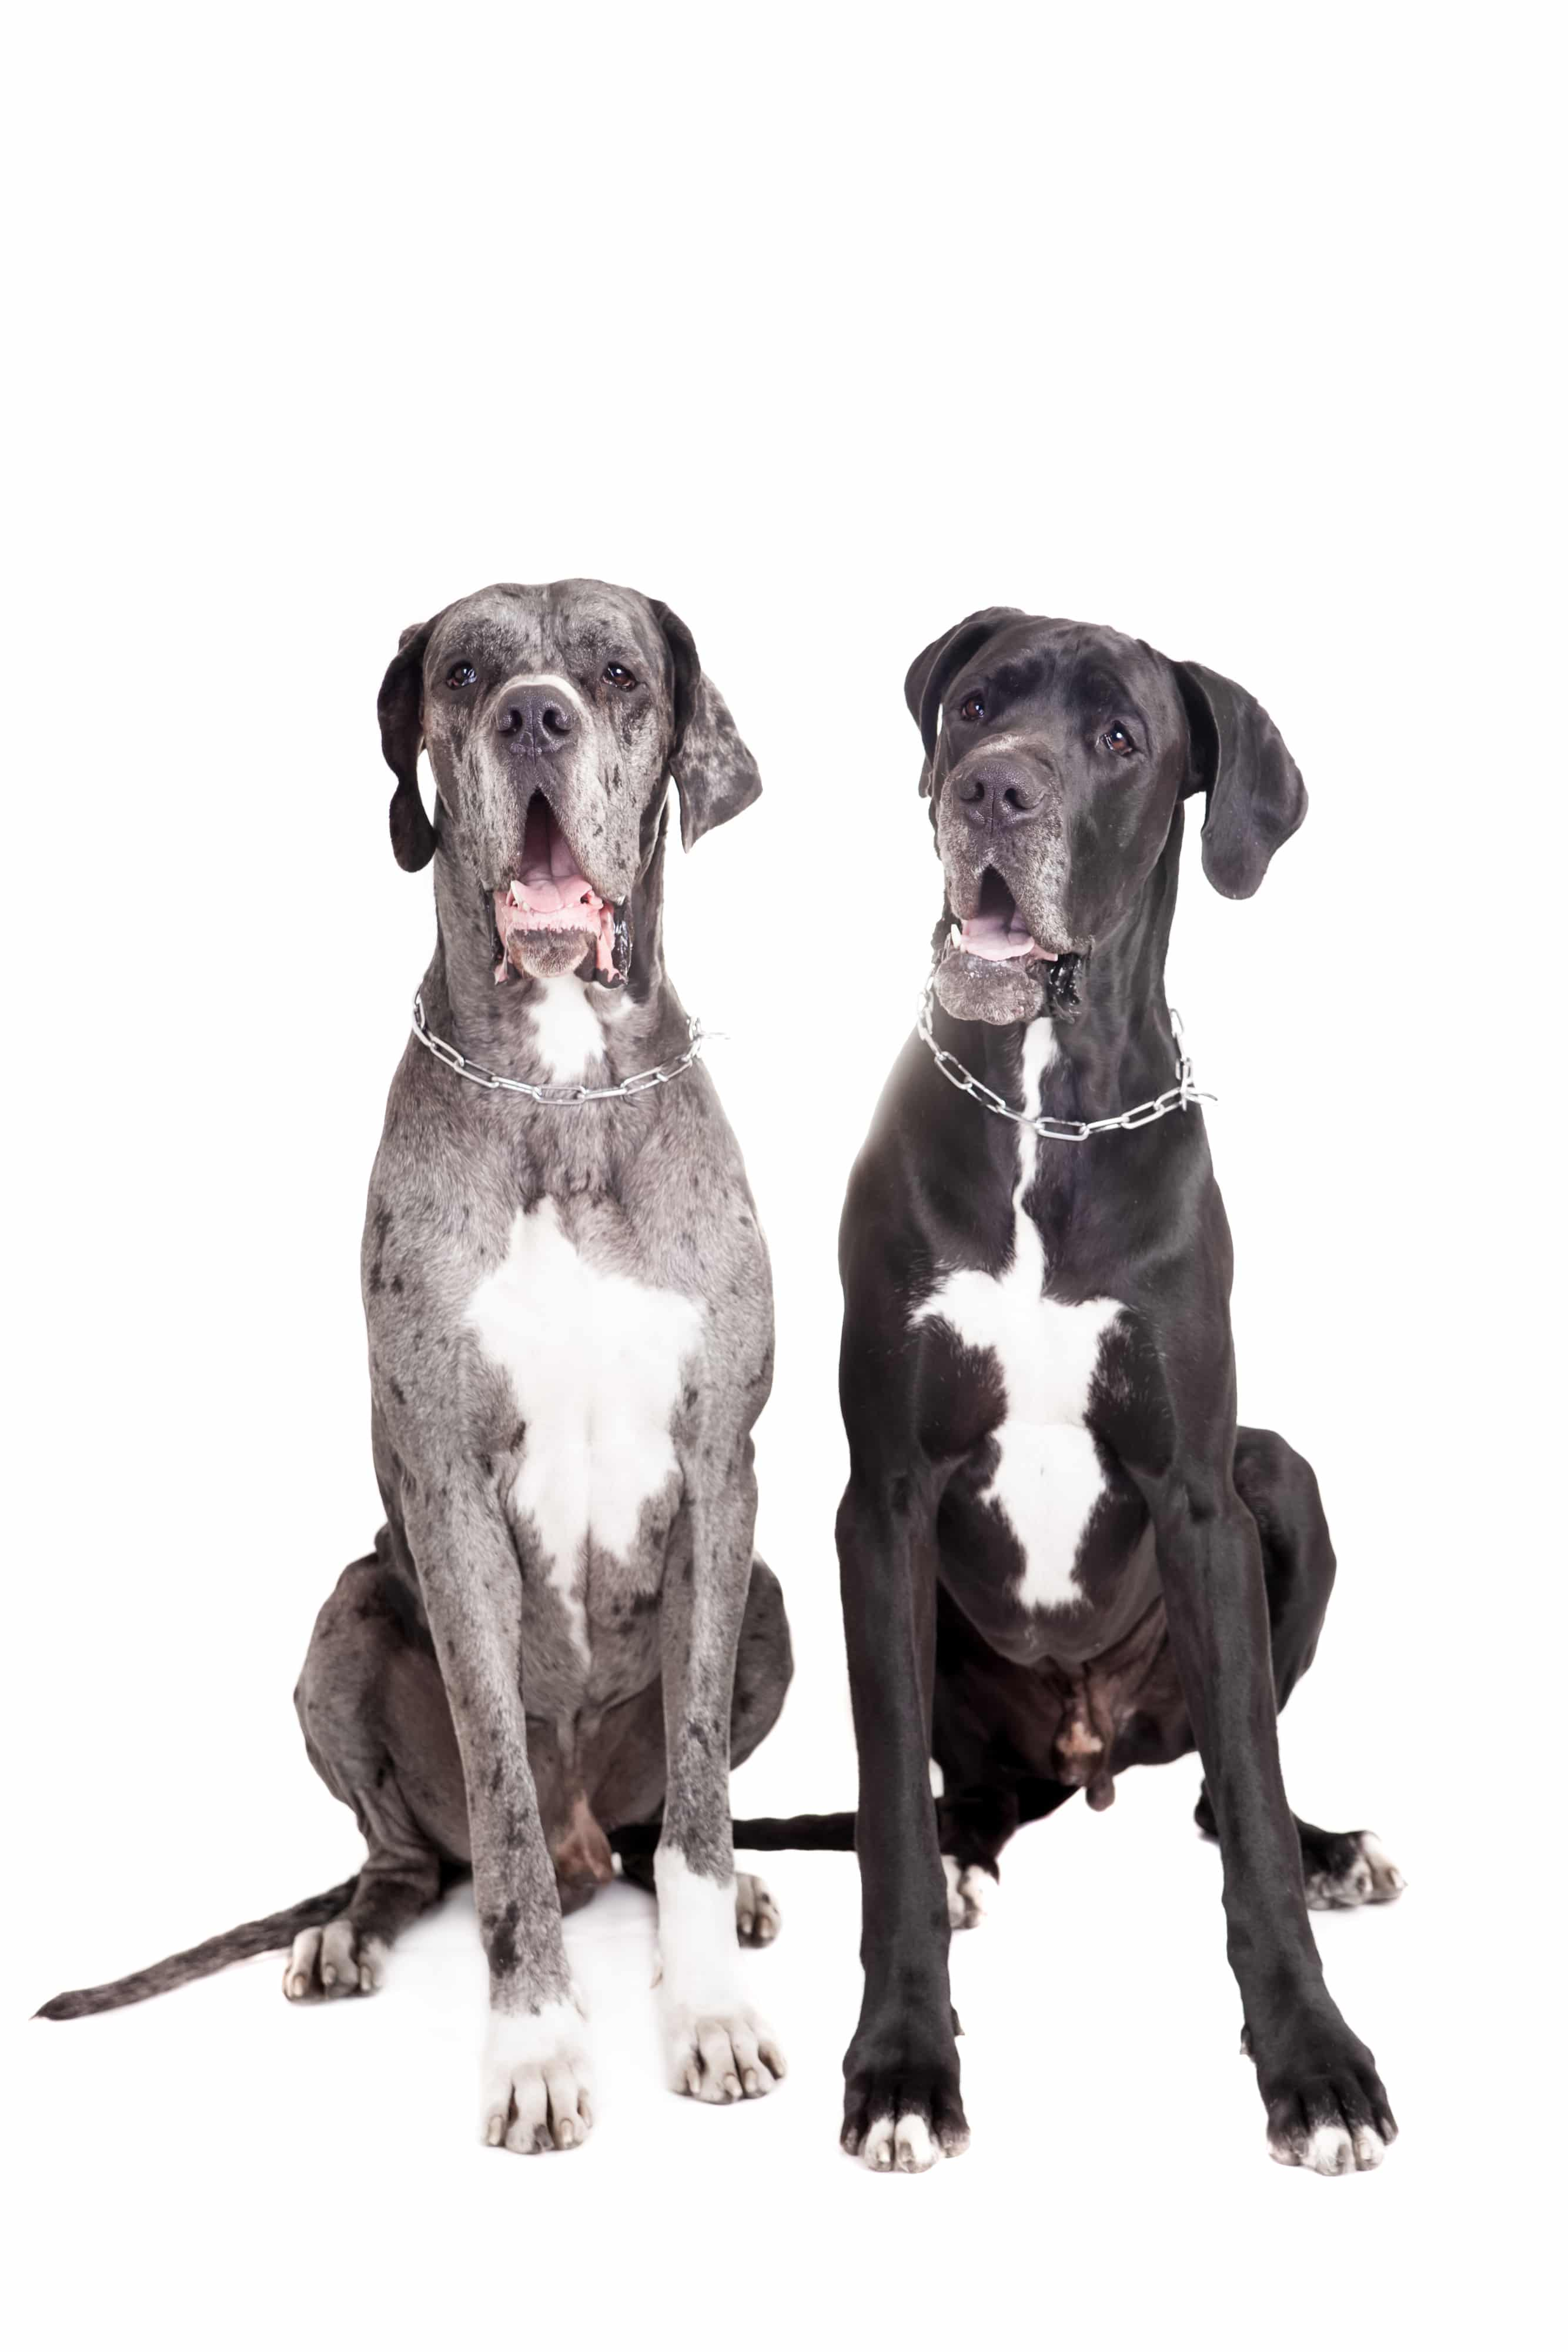 Two great Dane dogs on front of a white background